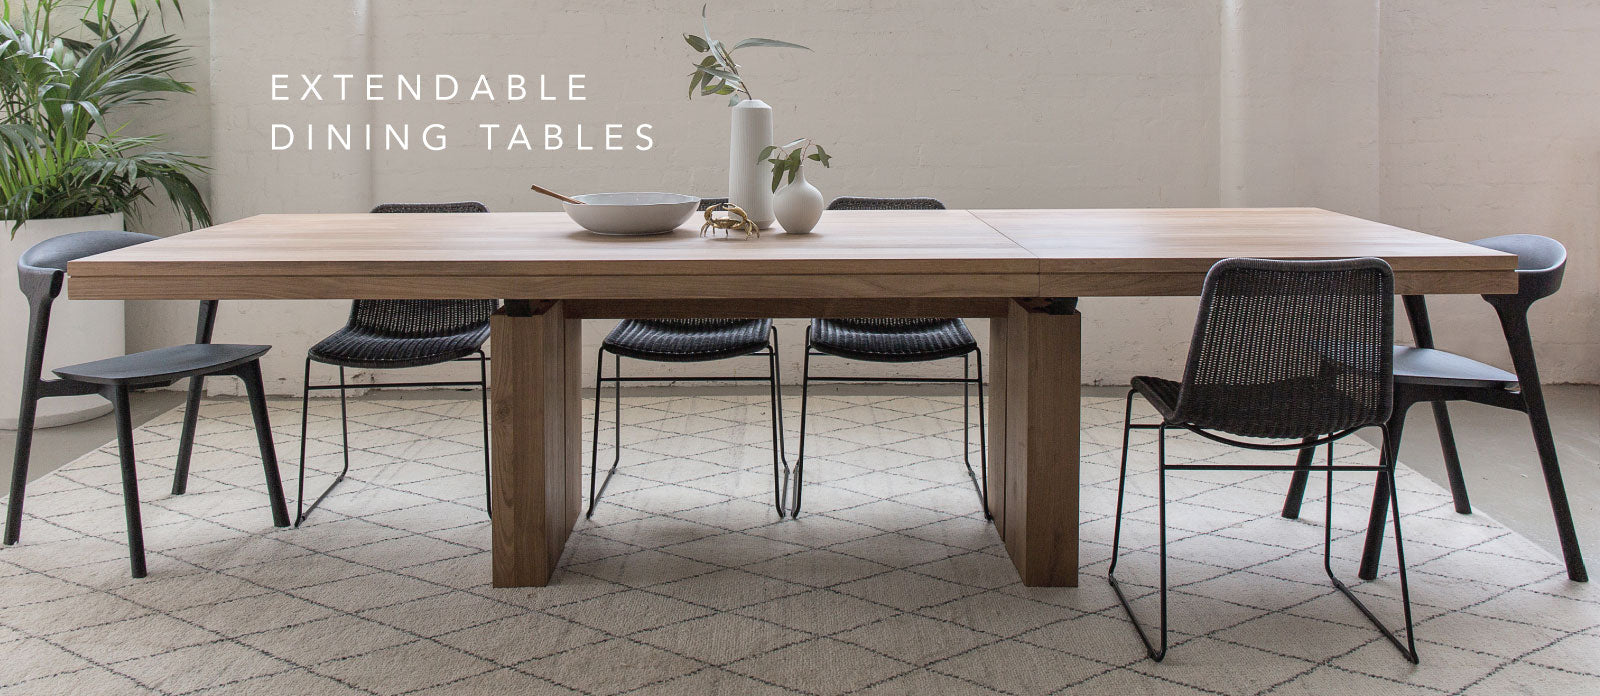 Extendable Dining Tables Online In Australia Curious Grace